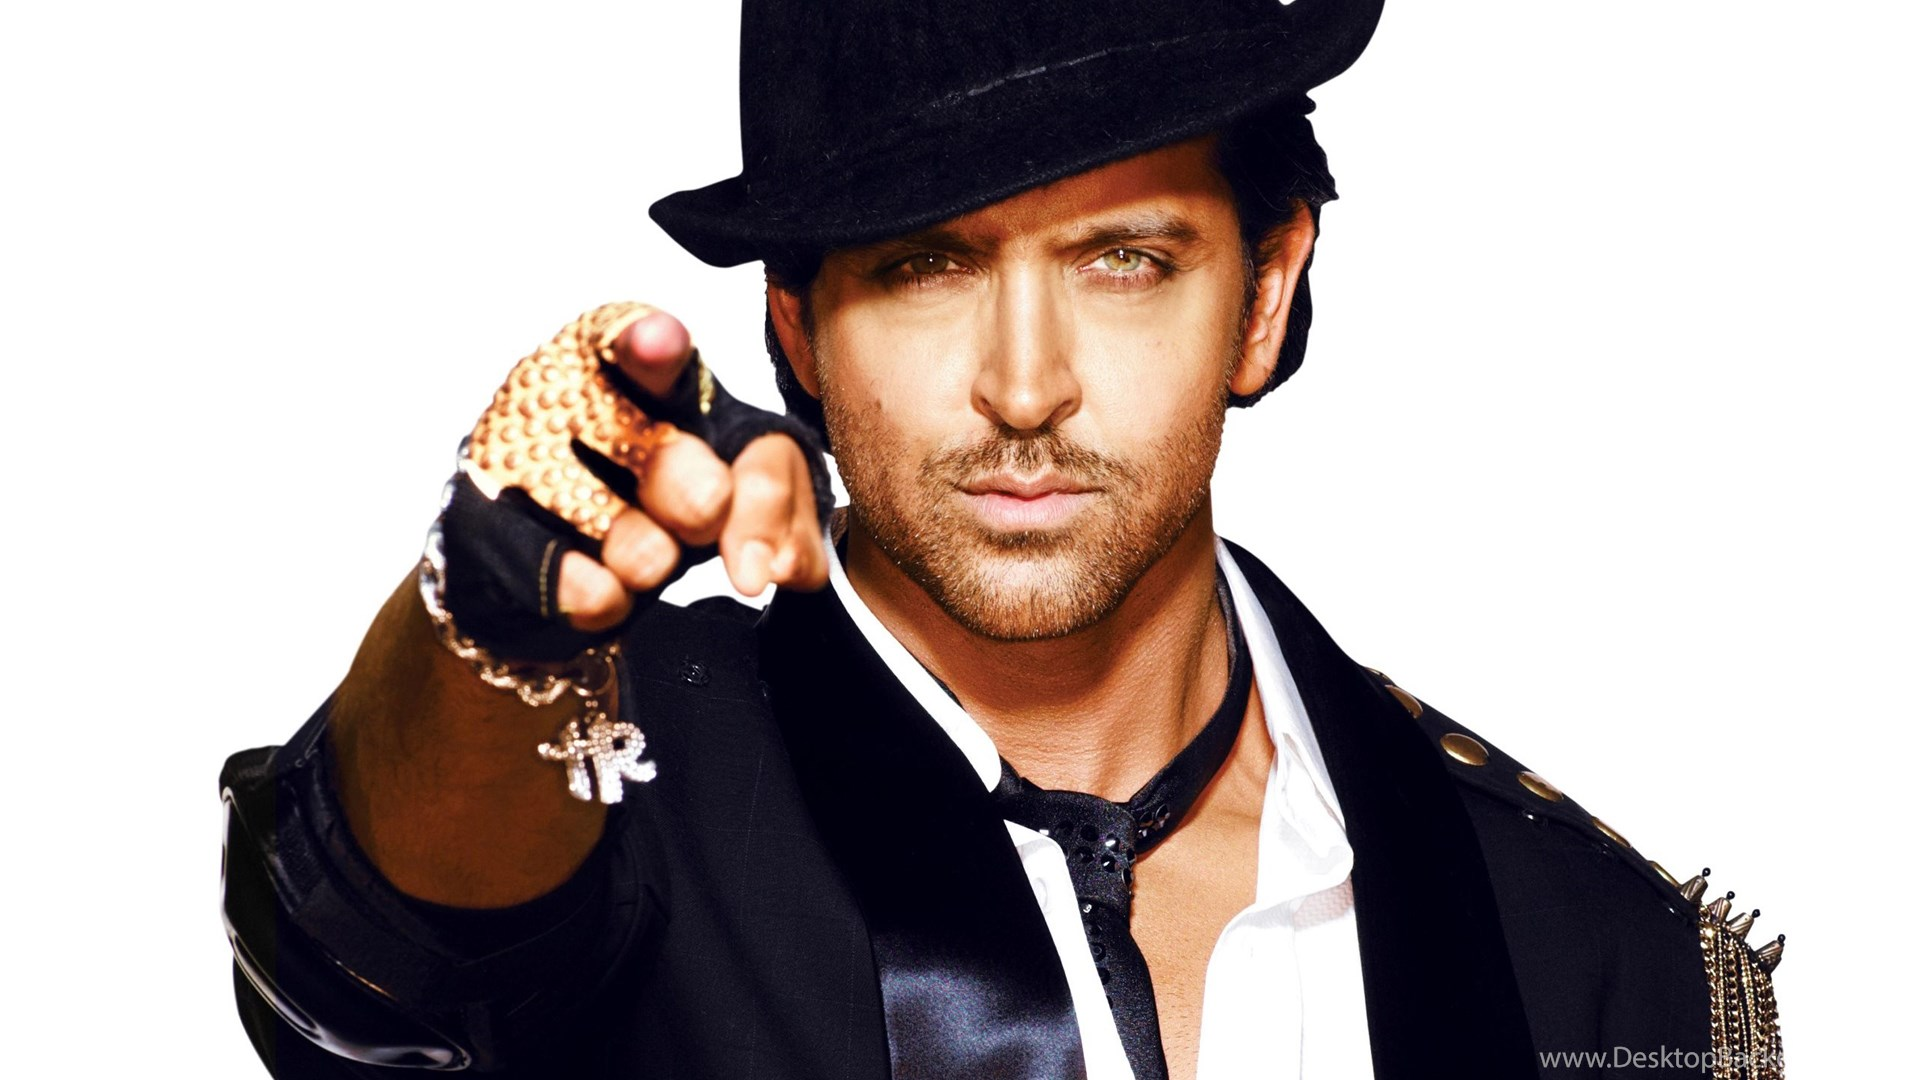 Wallpapers Indian Film Stars Of Movie Star Hrithik Roshan Click To